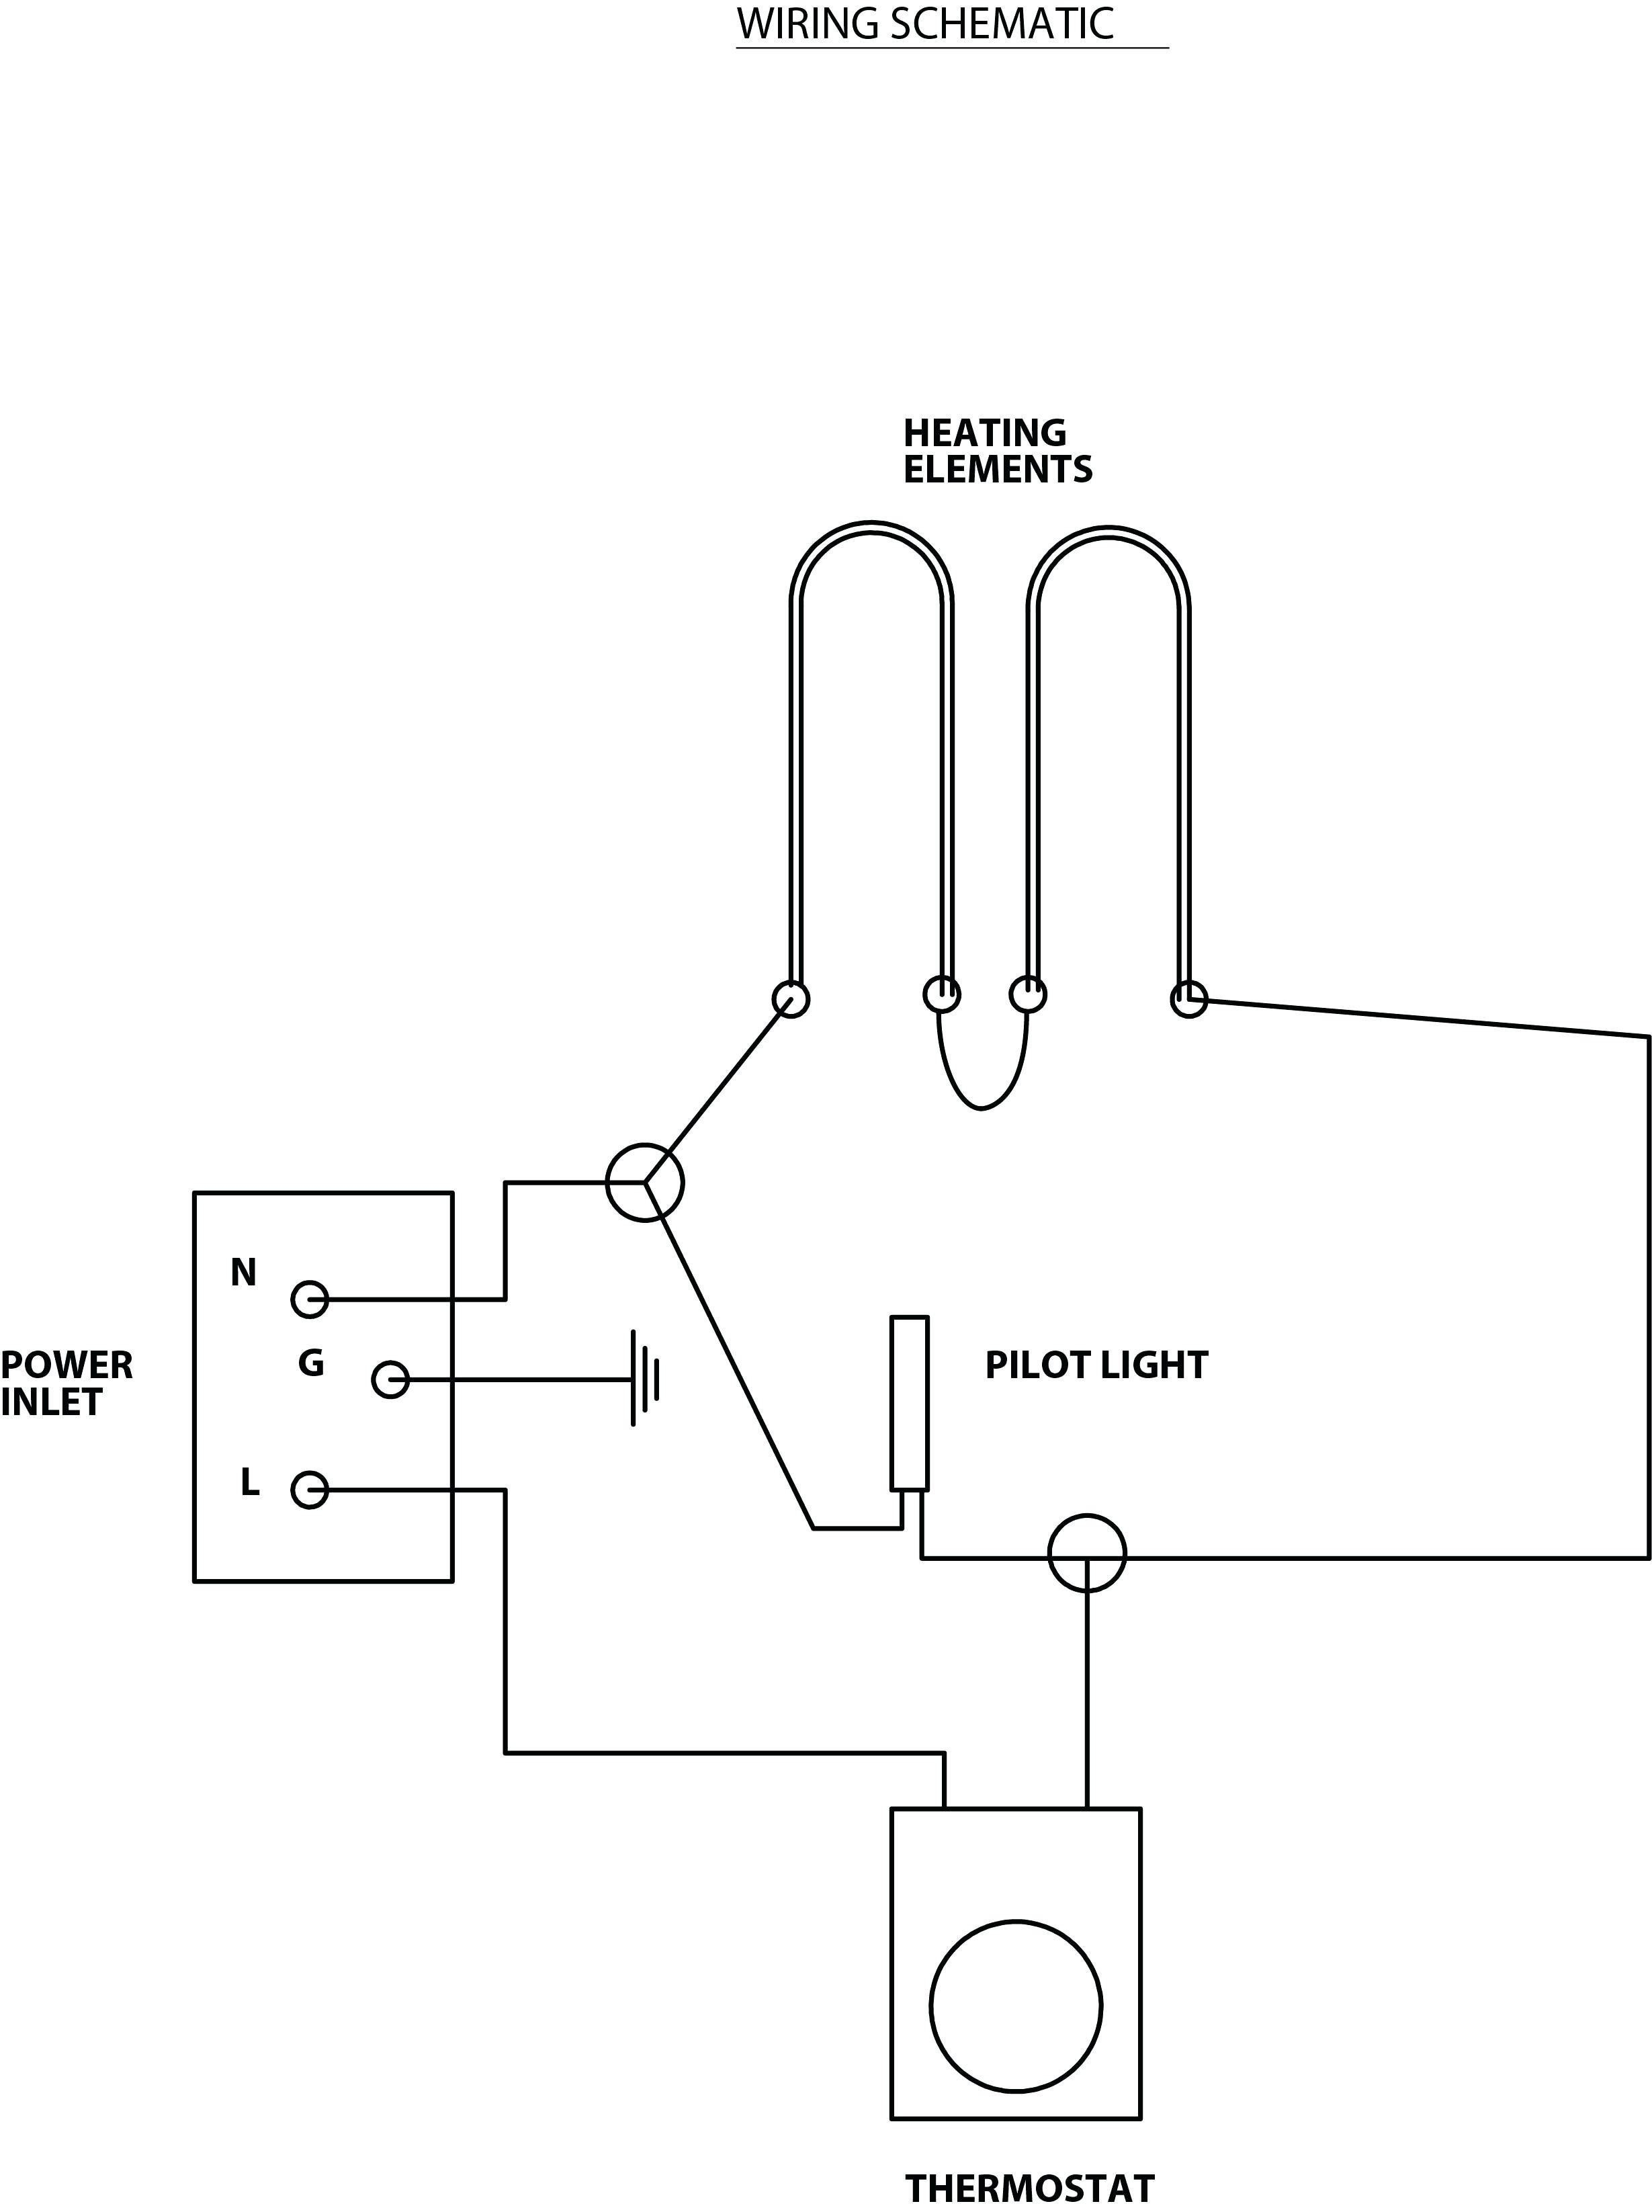 Diagram Likewise Ford F100 Wiring Diagrams On 90 Volvo Wiper Motor